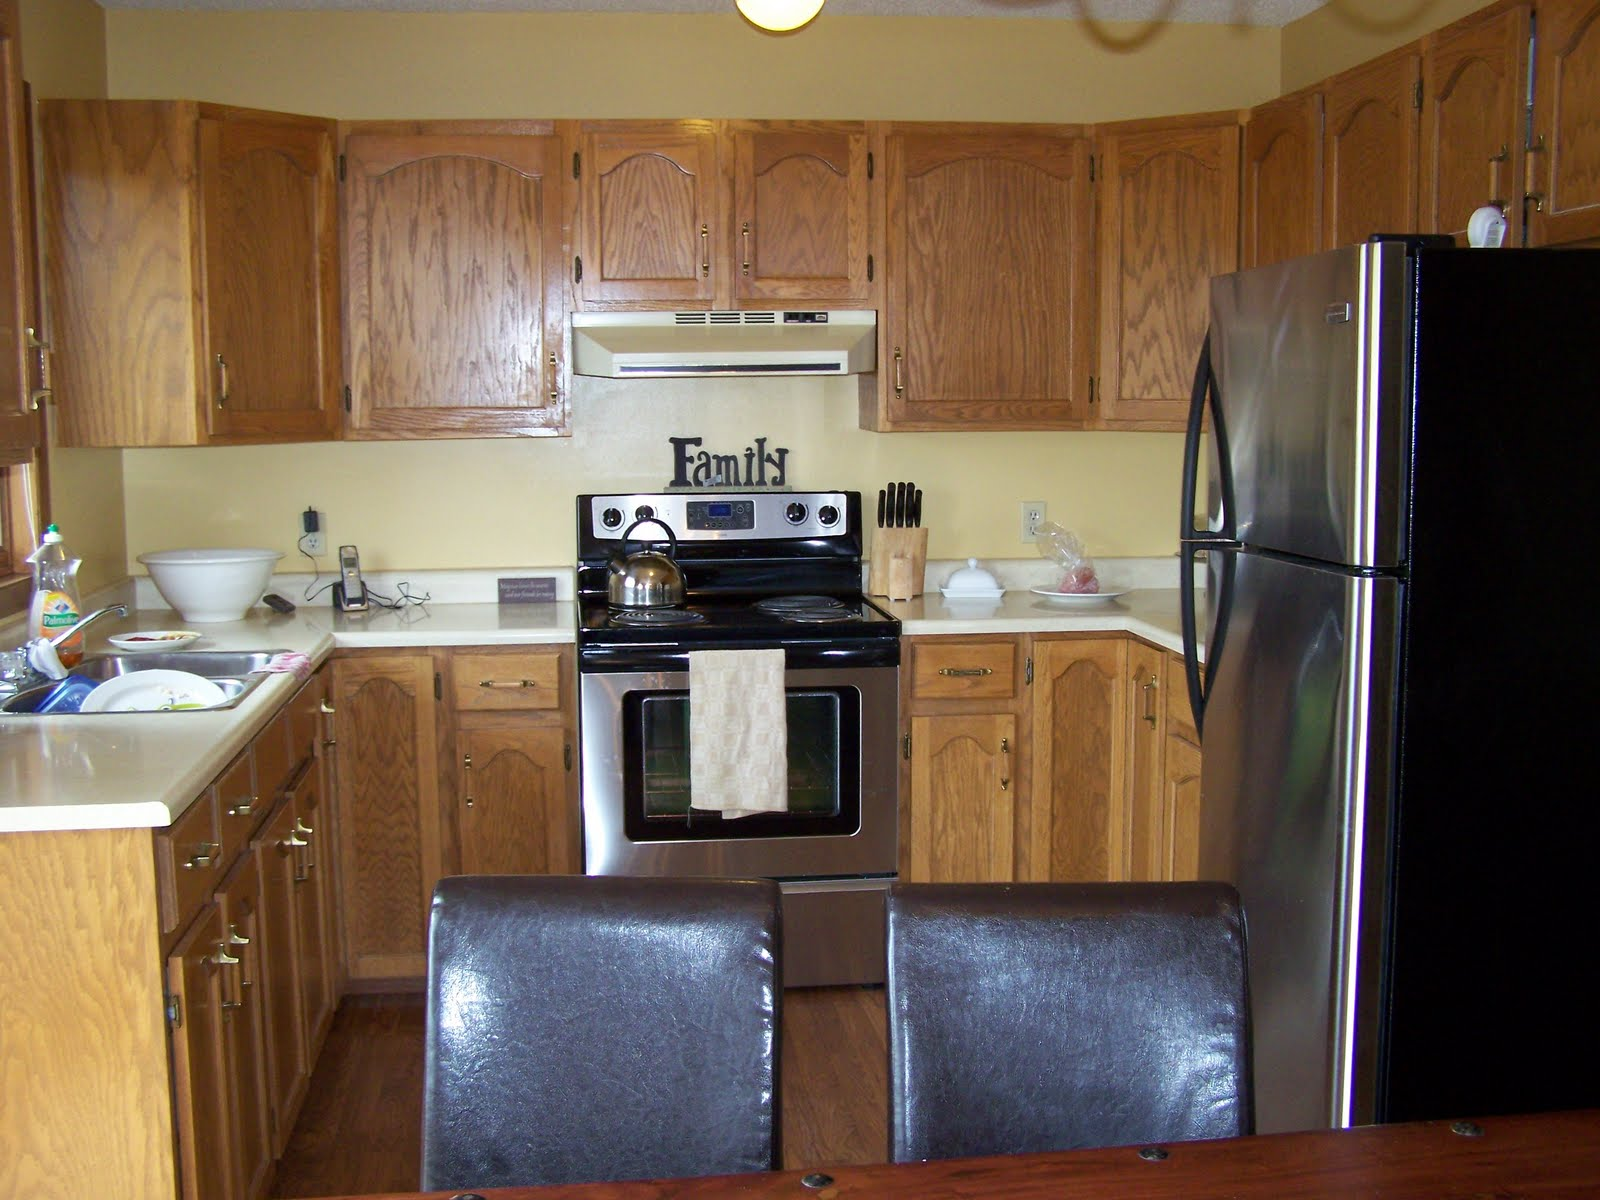 low budget kitchen renovation kitchen remodel budget Low Budget Kitchen Renovation